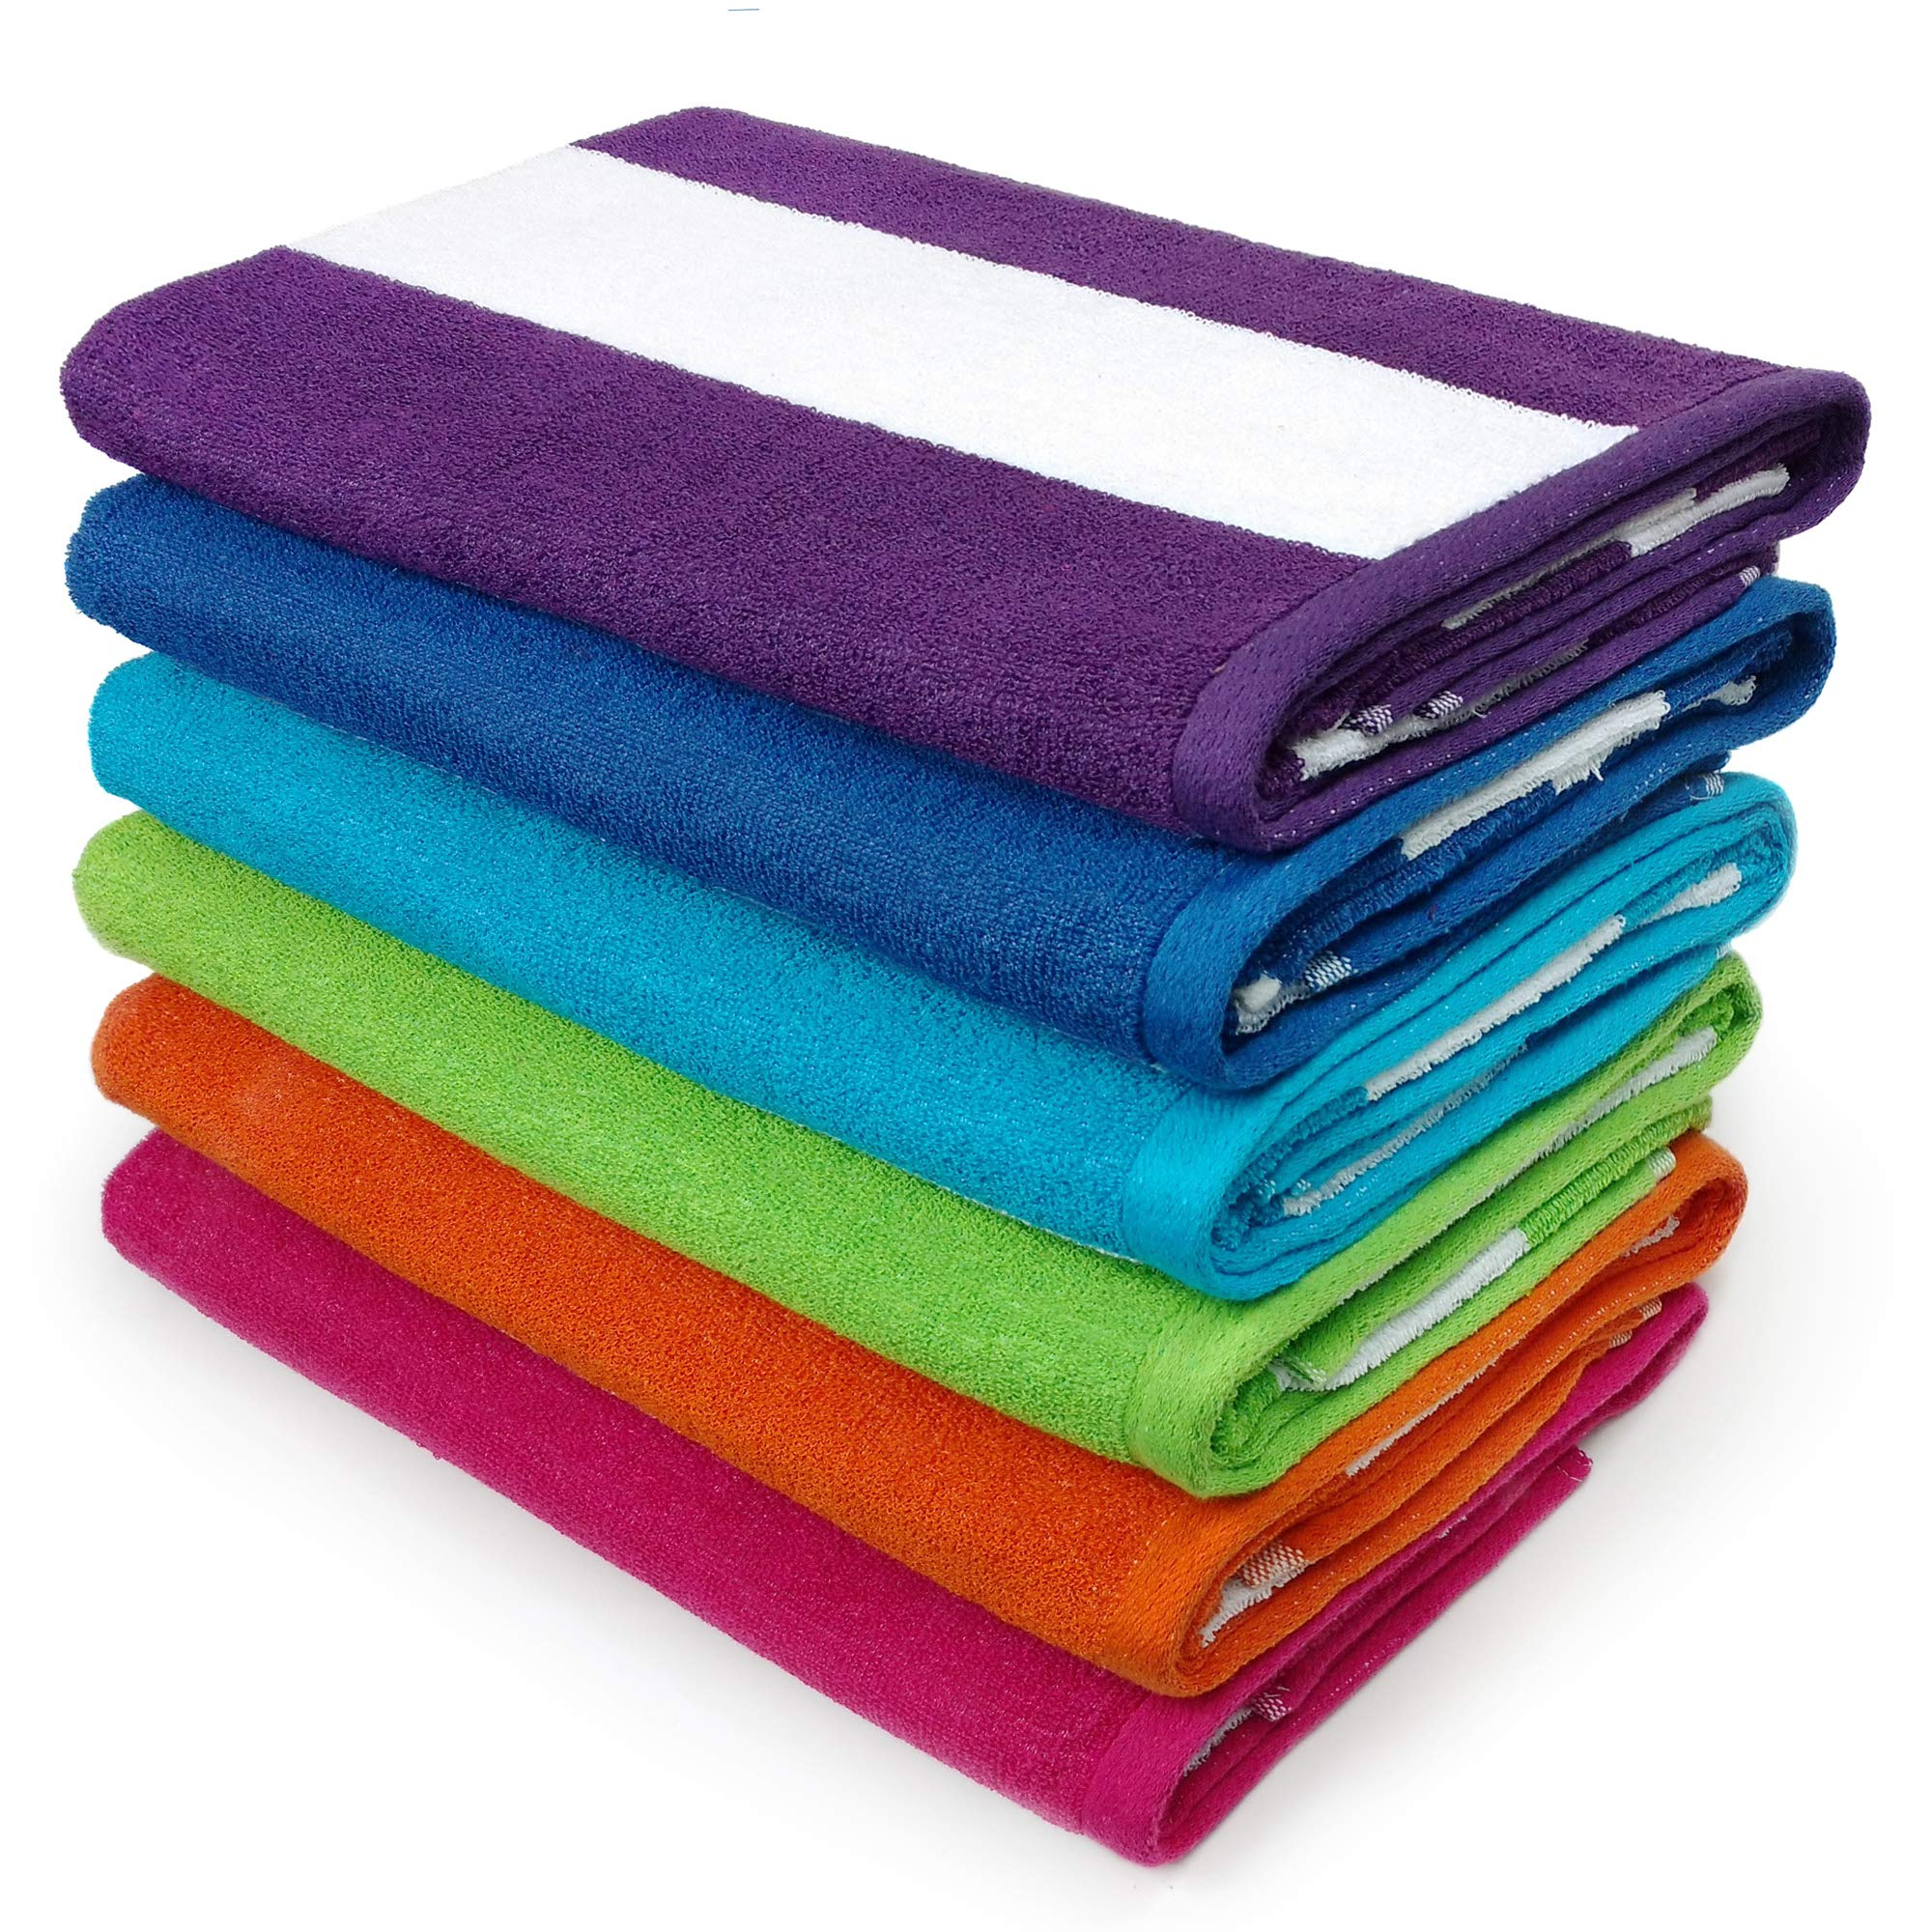 KAUFMAN - Cabana Terry Loop Beach & Pool Towel 6-Pack - 30in x 60in